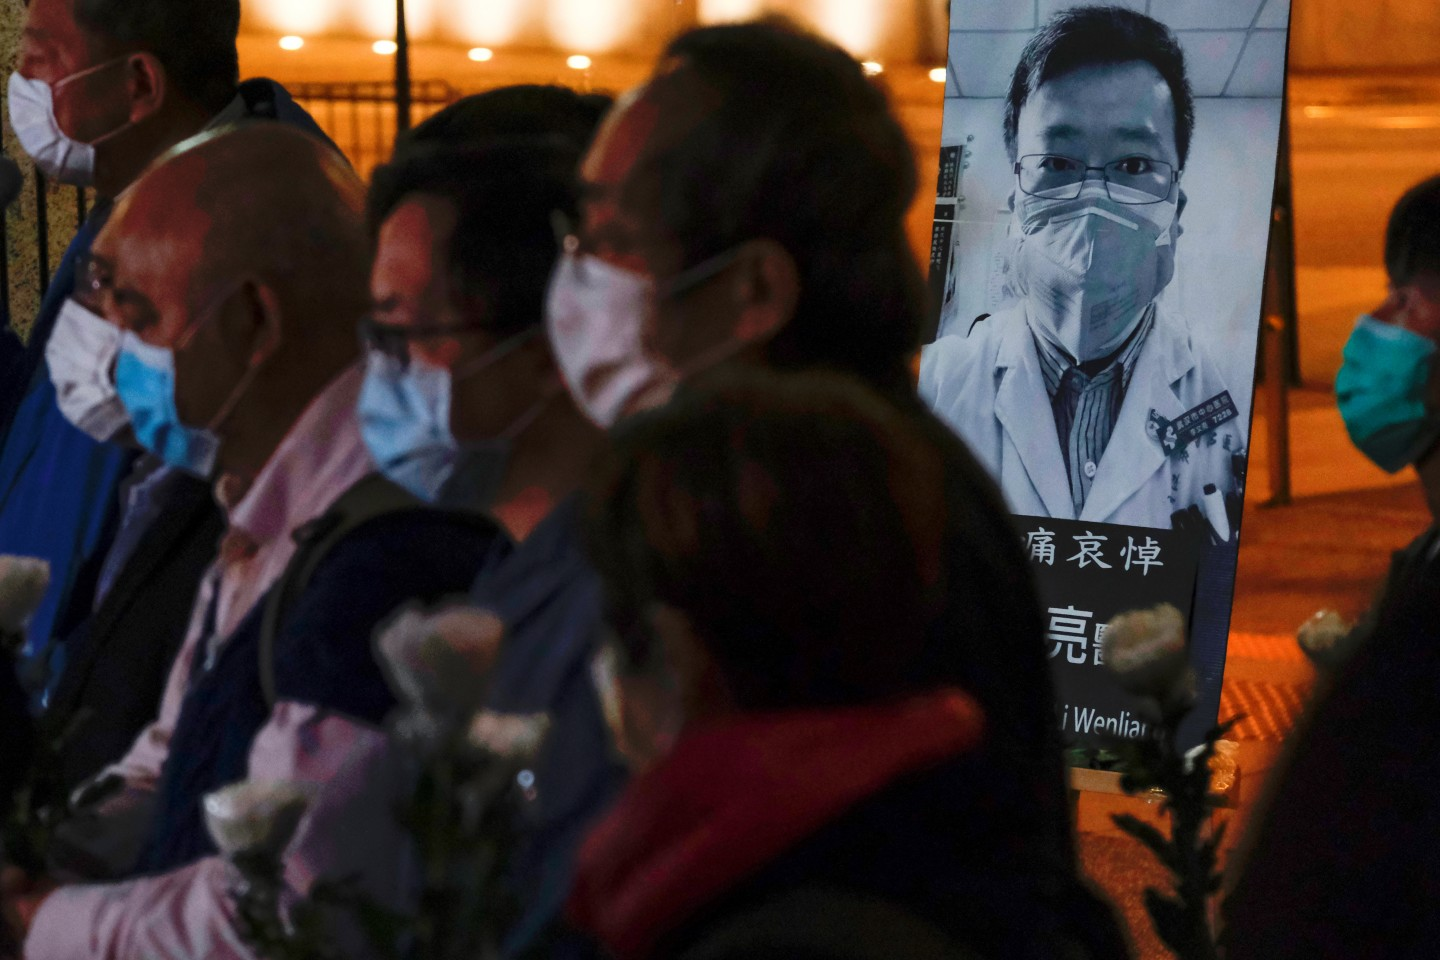 People wearing masks attend a vigil for late Li Wenliang, an ophthalmologist who died of coronavirus at a hospital in Wuhan. (Tyrone Siu/Reuters)